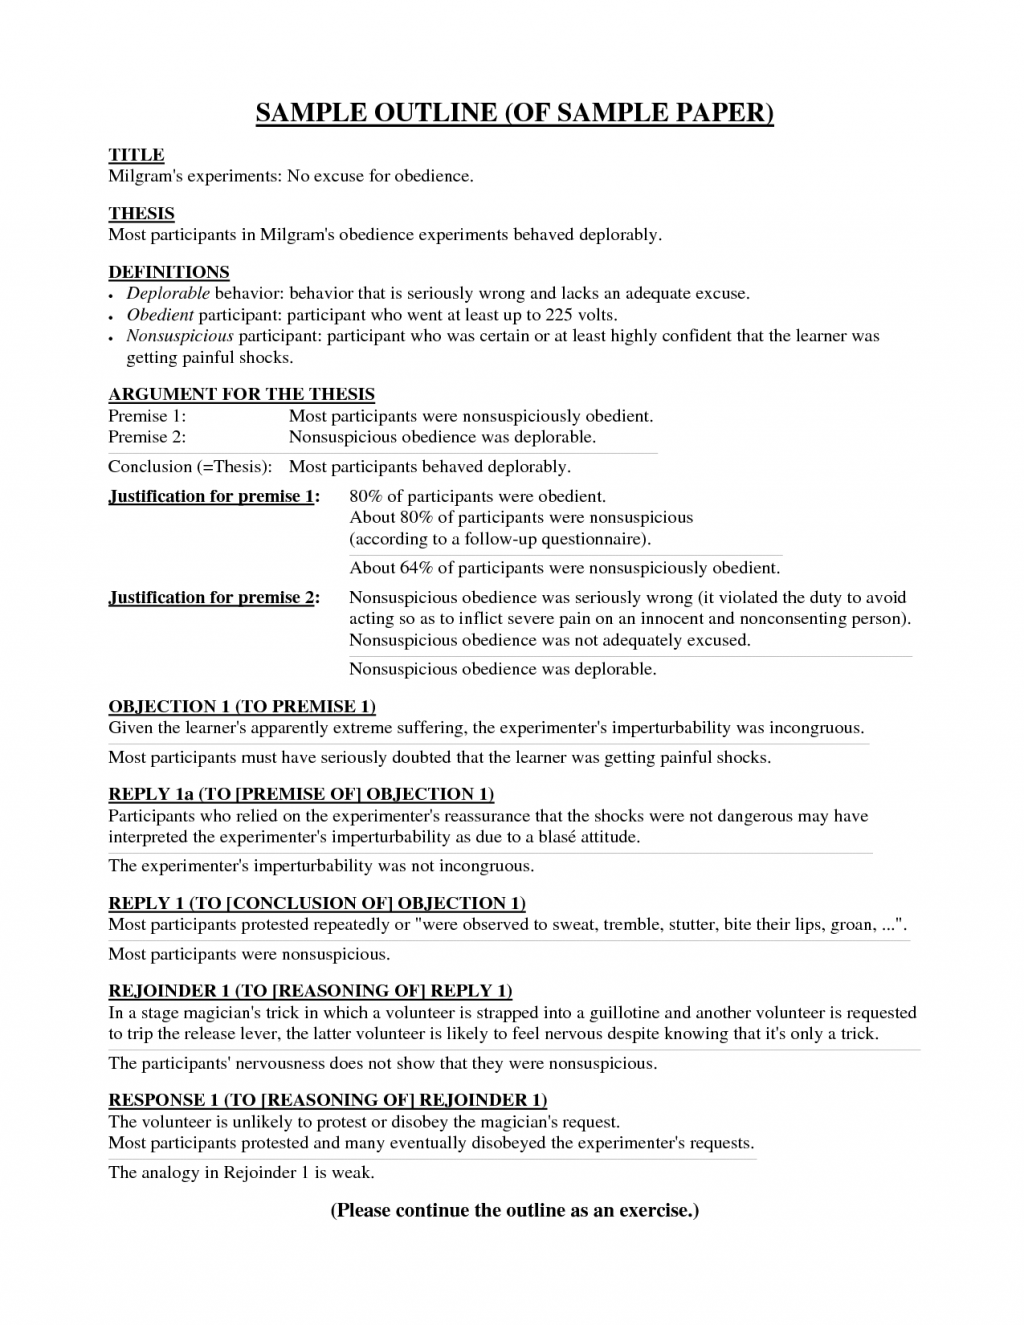 016 Apa Format Of Research Paper Outline 20example Essay Layout Thesis Picture Resume Examples Outlines For Papers In Format20 Impressive A Sample Style Example Full